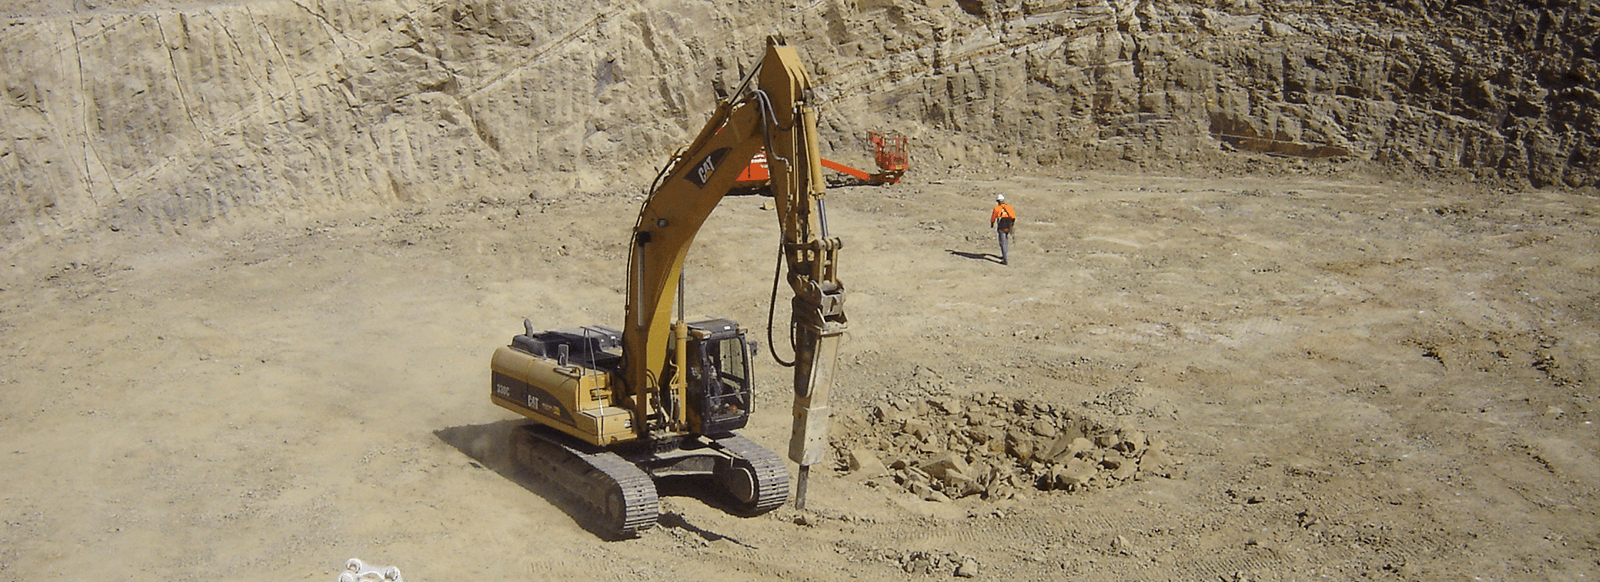 Paulls Construction Equipment Excavator rock breaker